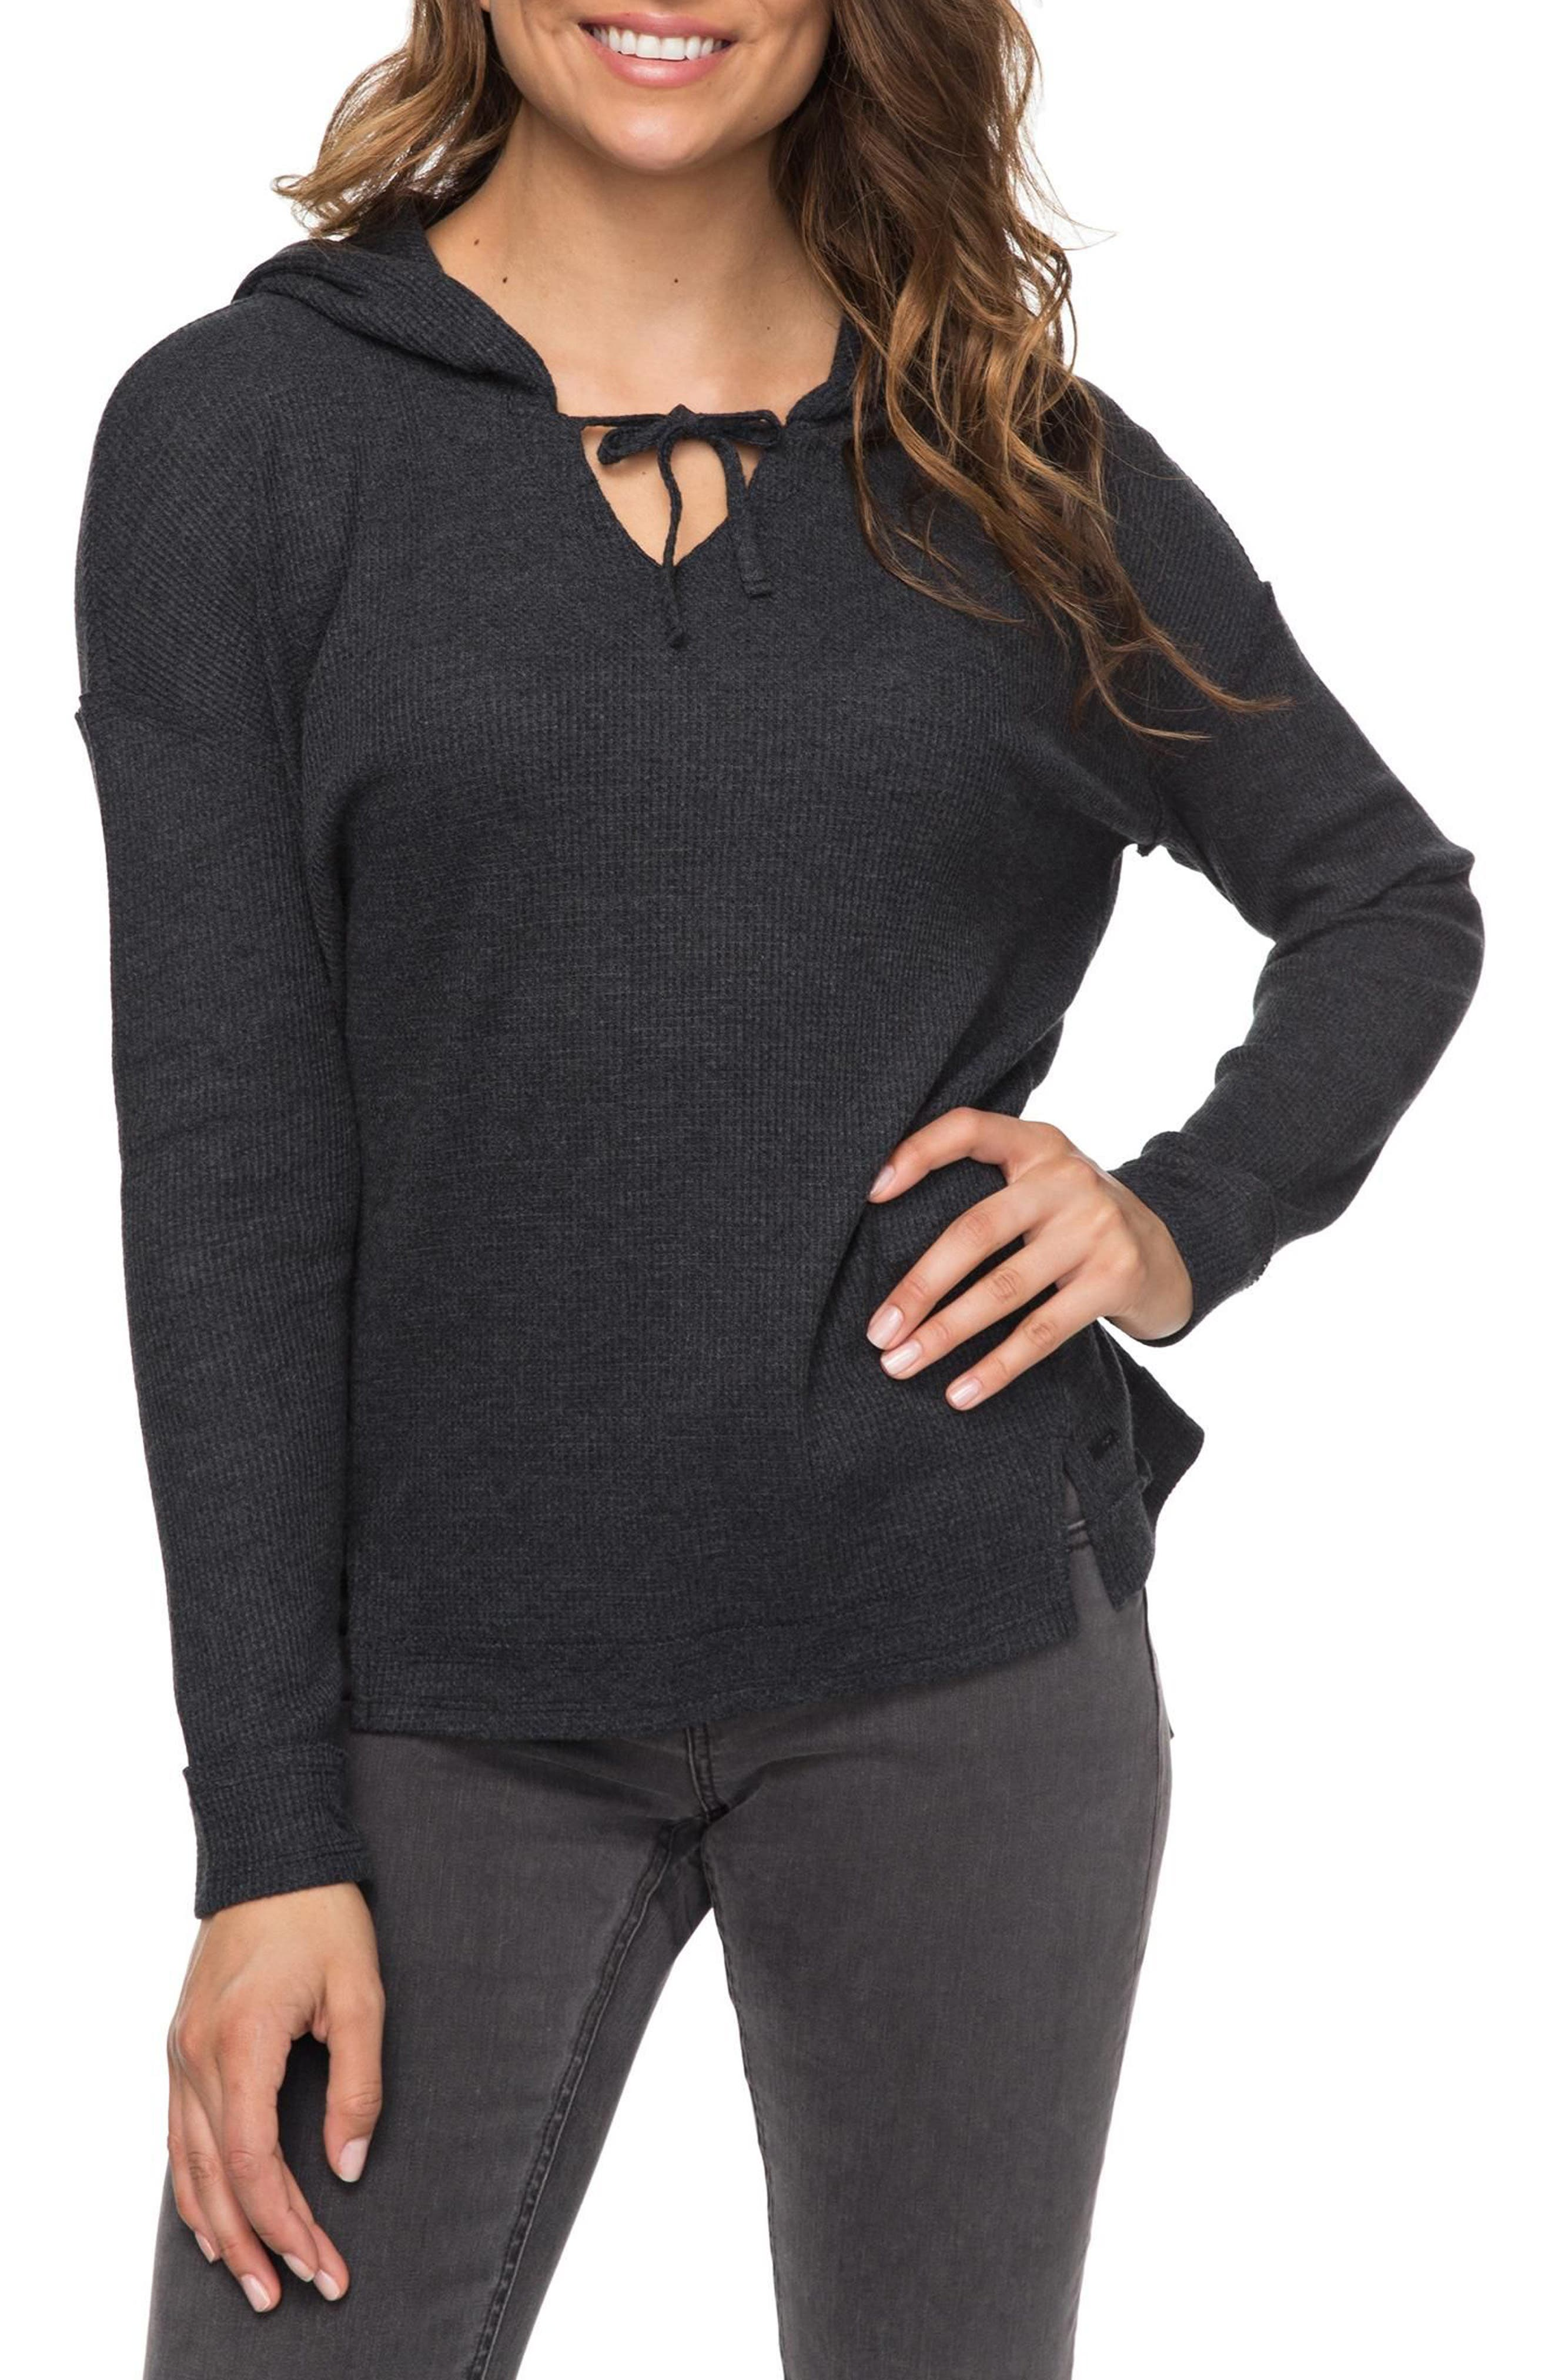 Main Image - Roxy Wanted and Wild Hooded Thermal Top